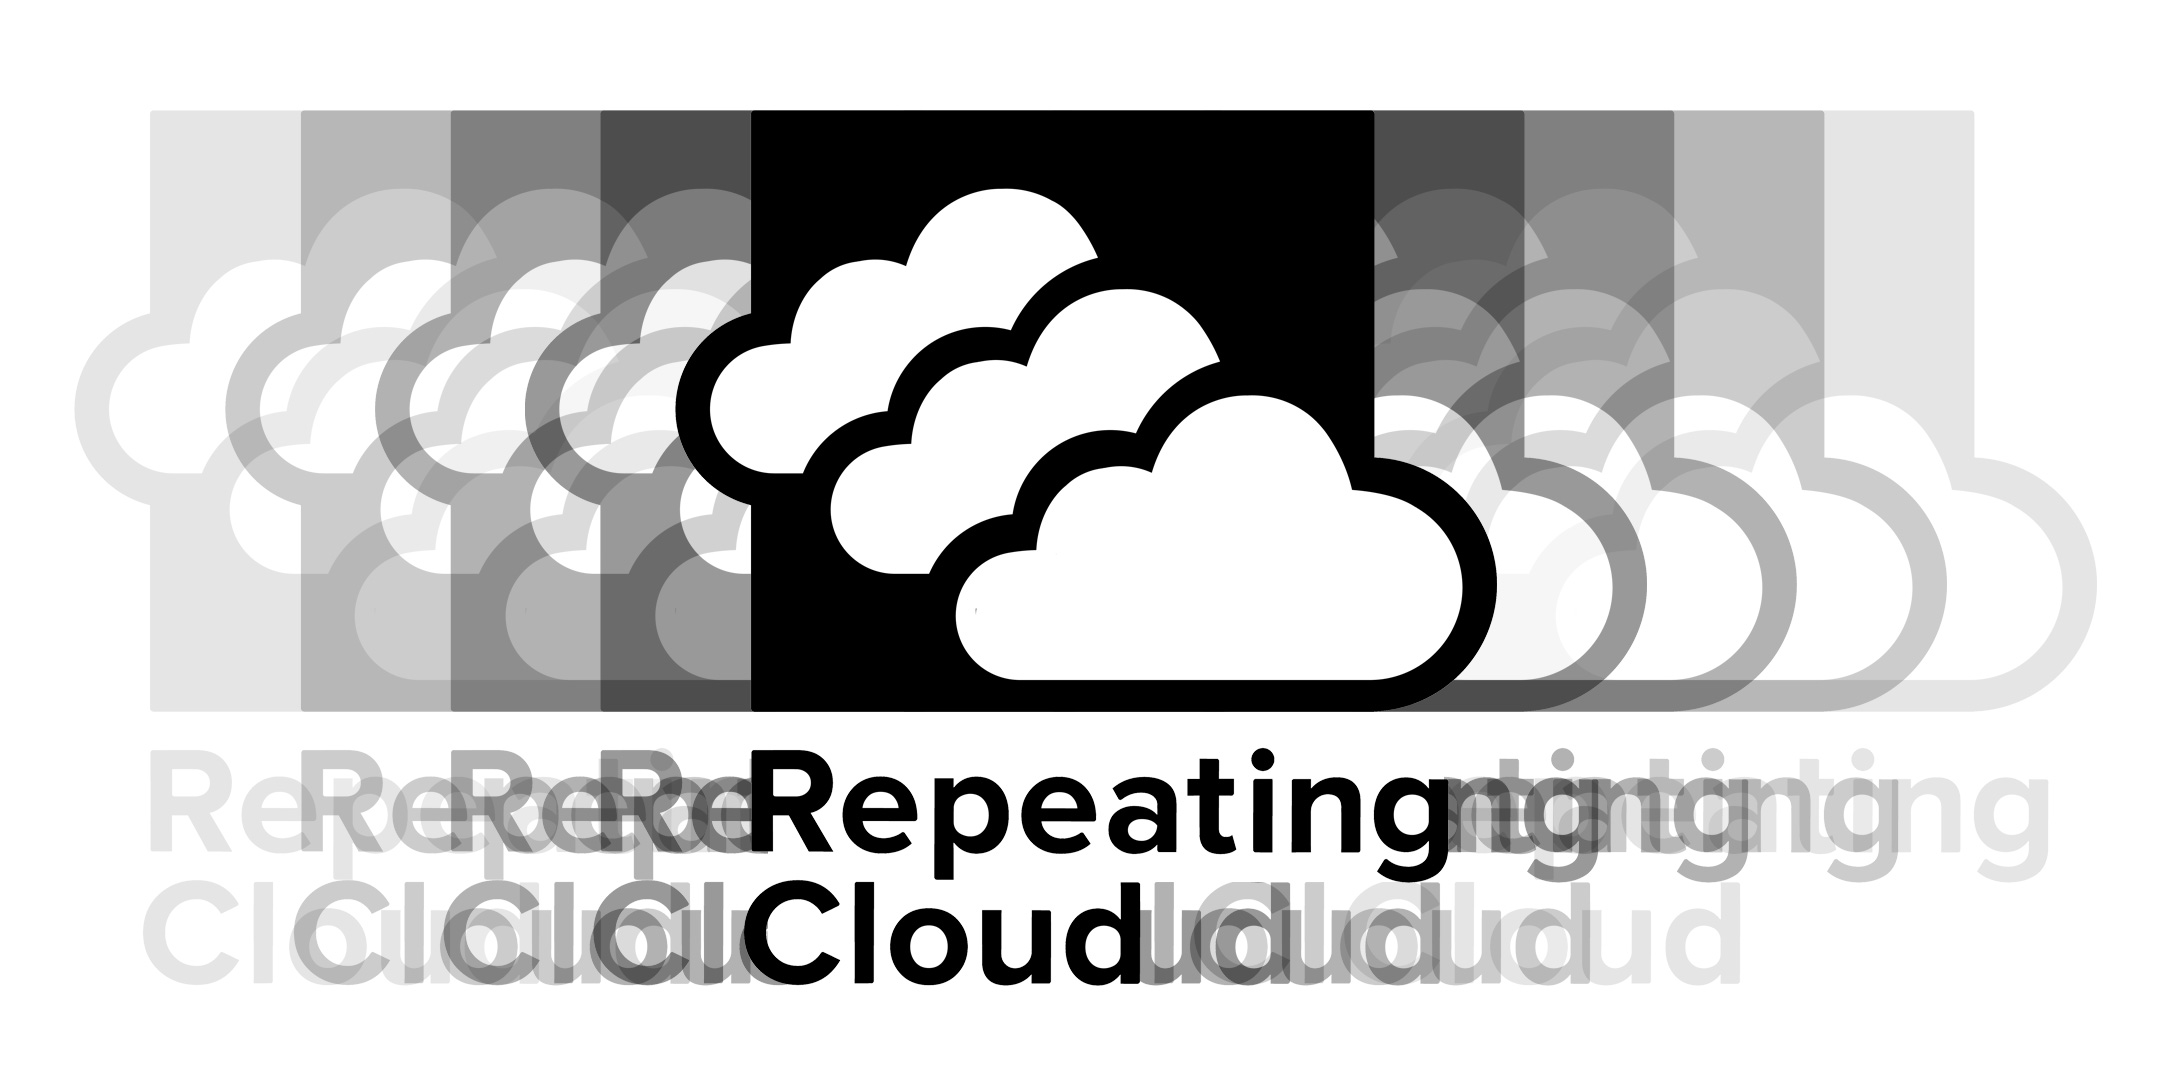 Repeating Cloud Records Launch Party (Night 1)